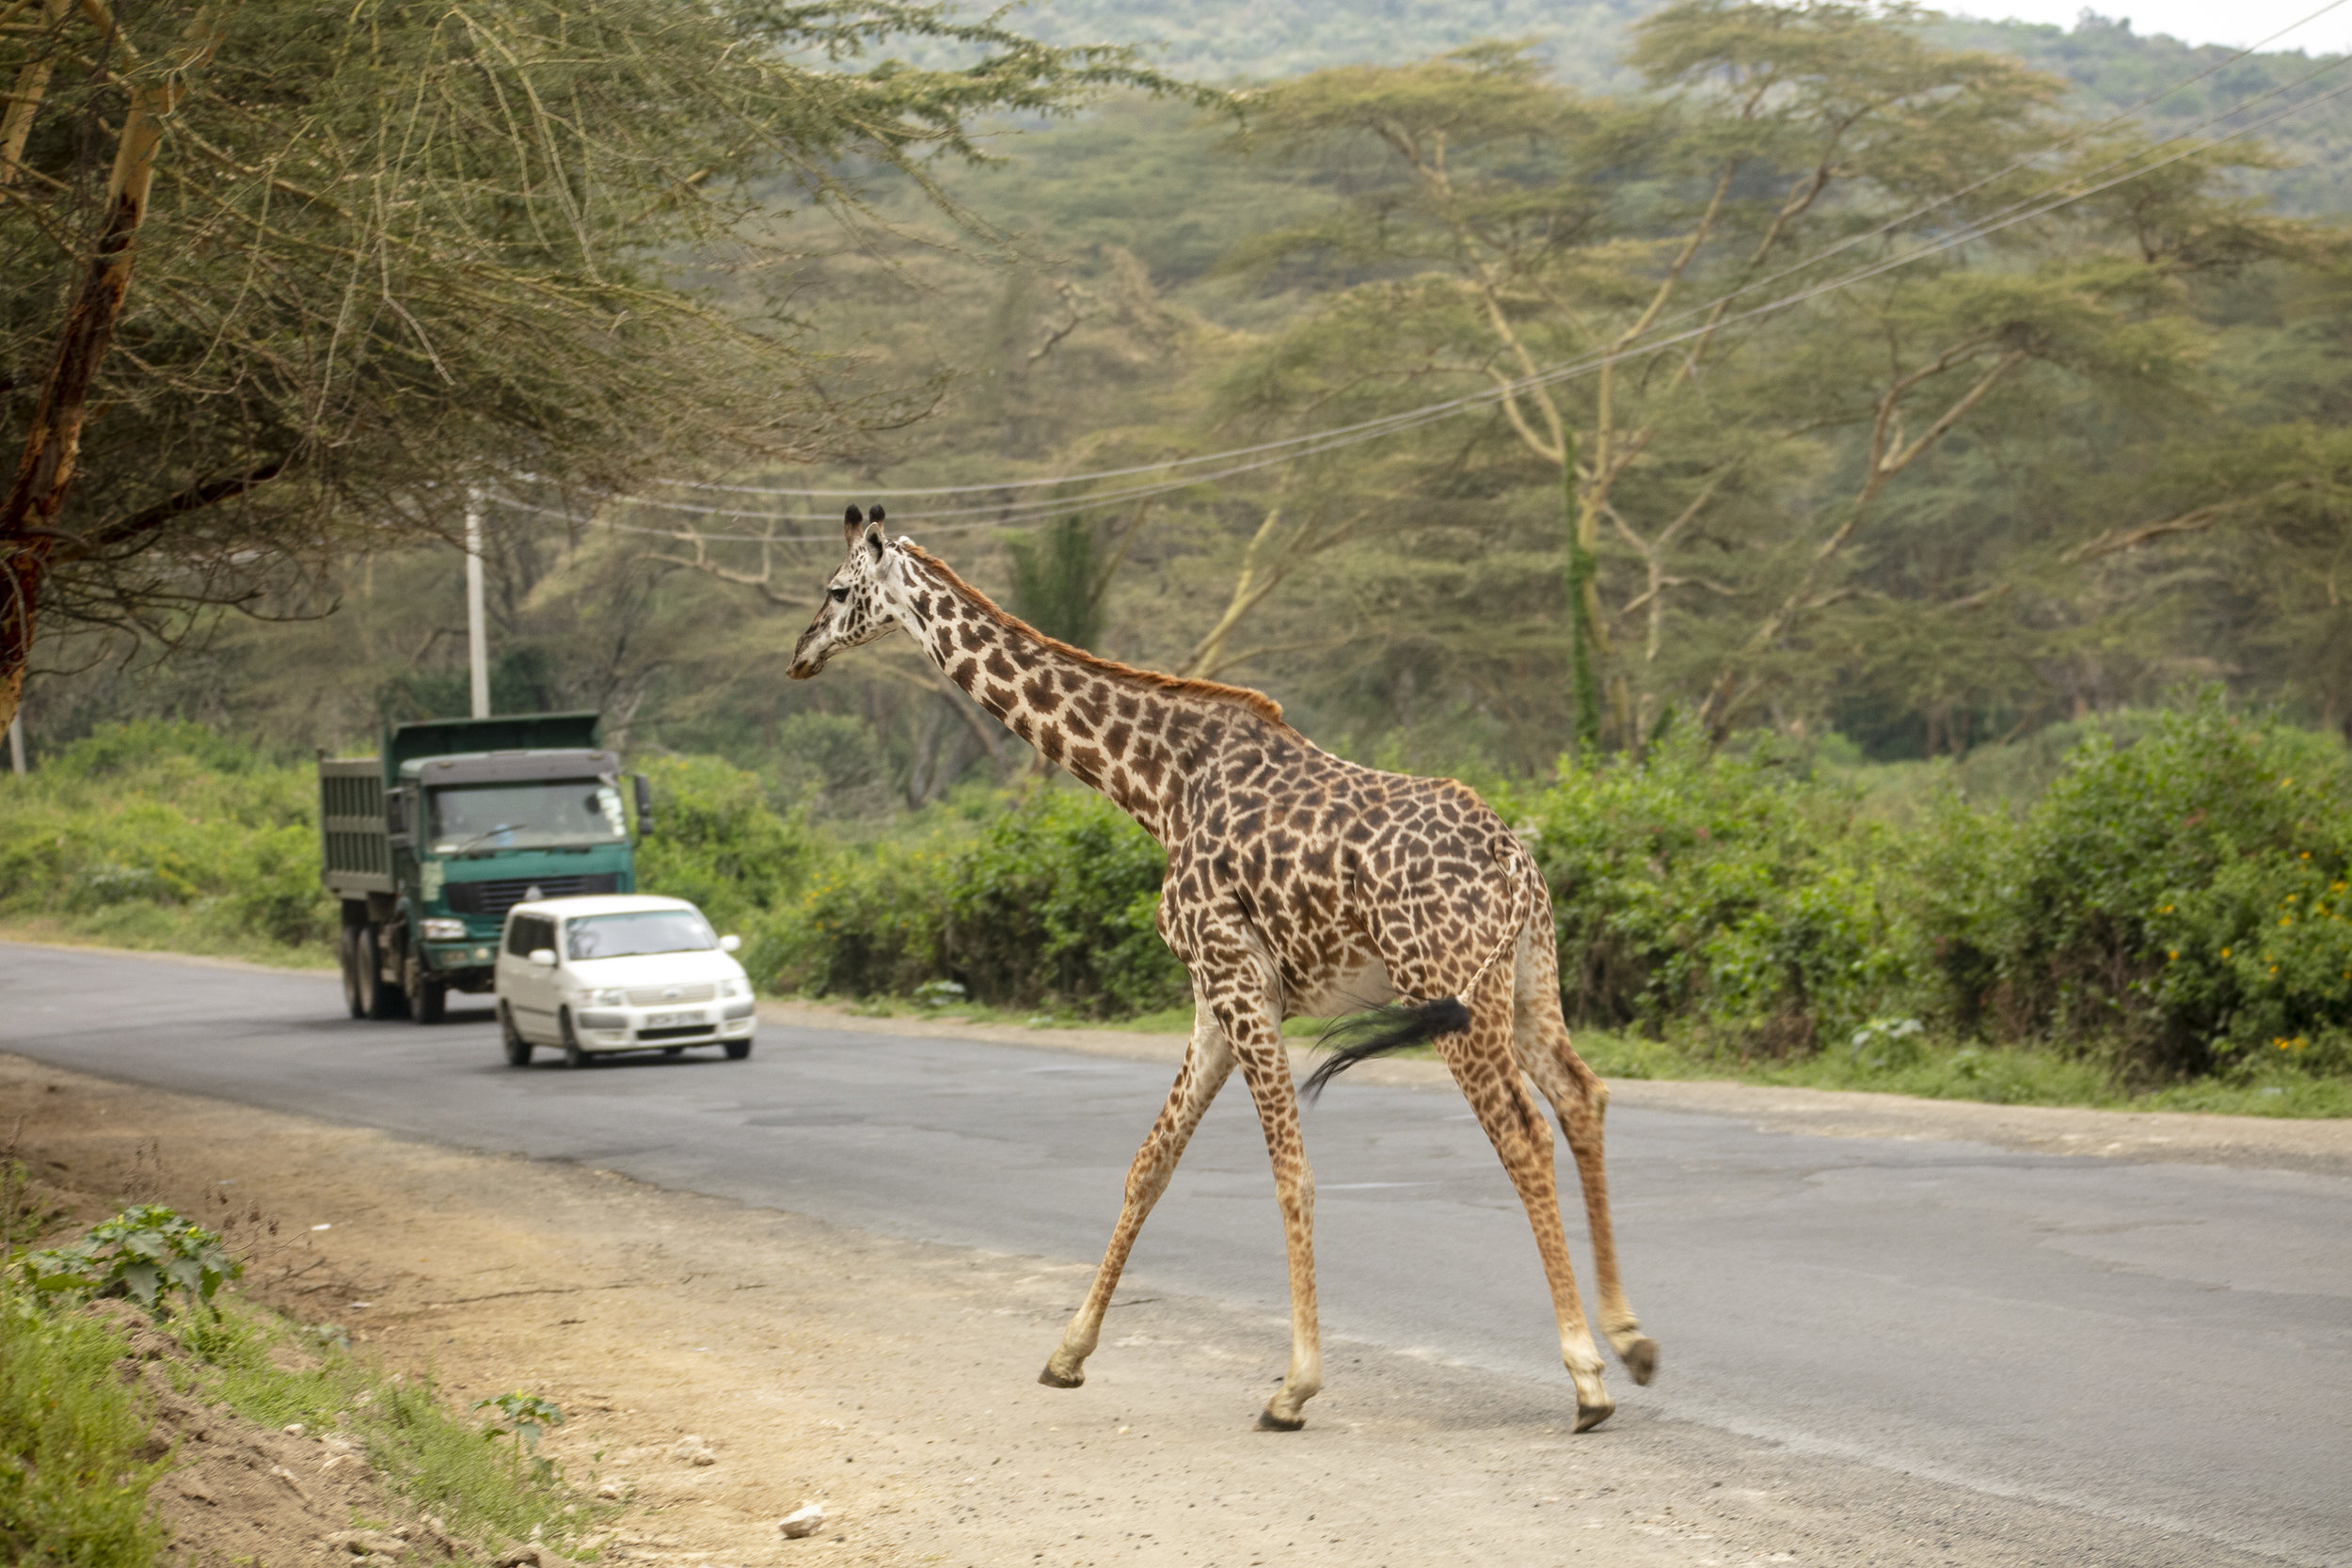 African Adventure - 21 July '18 - Lake Naivasha to Crater Lake Game Sanctuary - 010.JPG